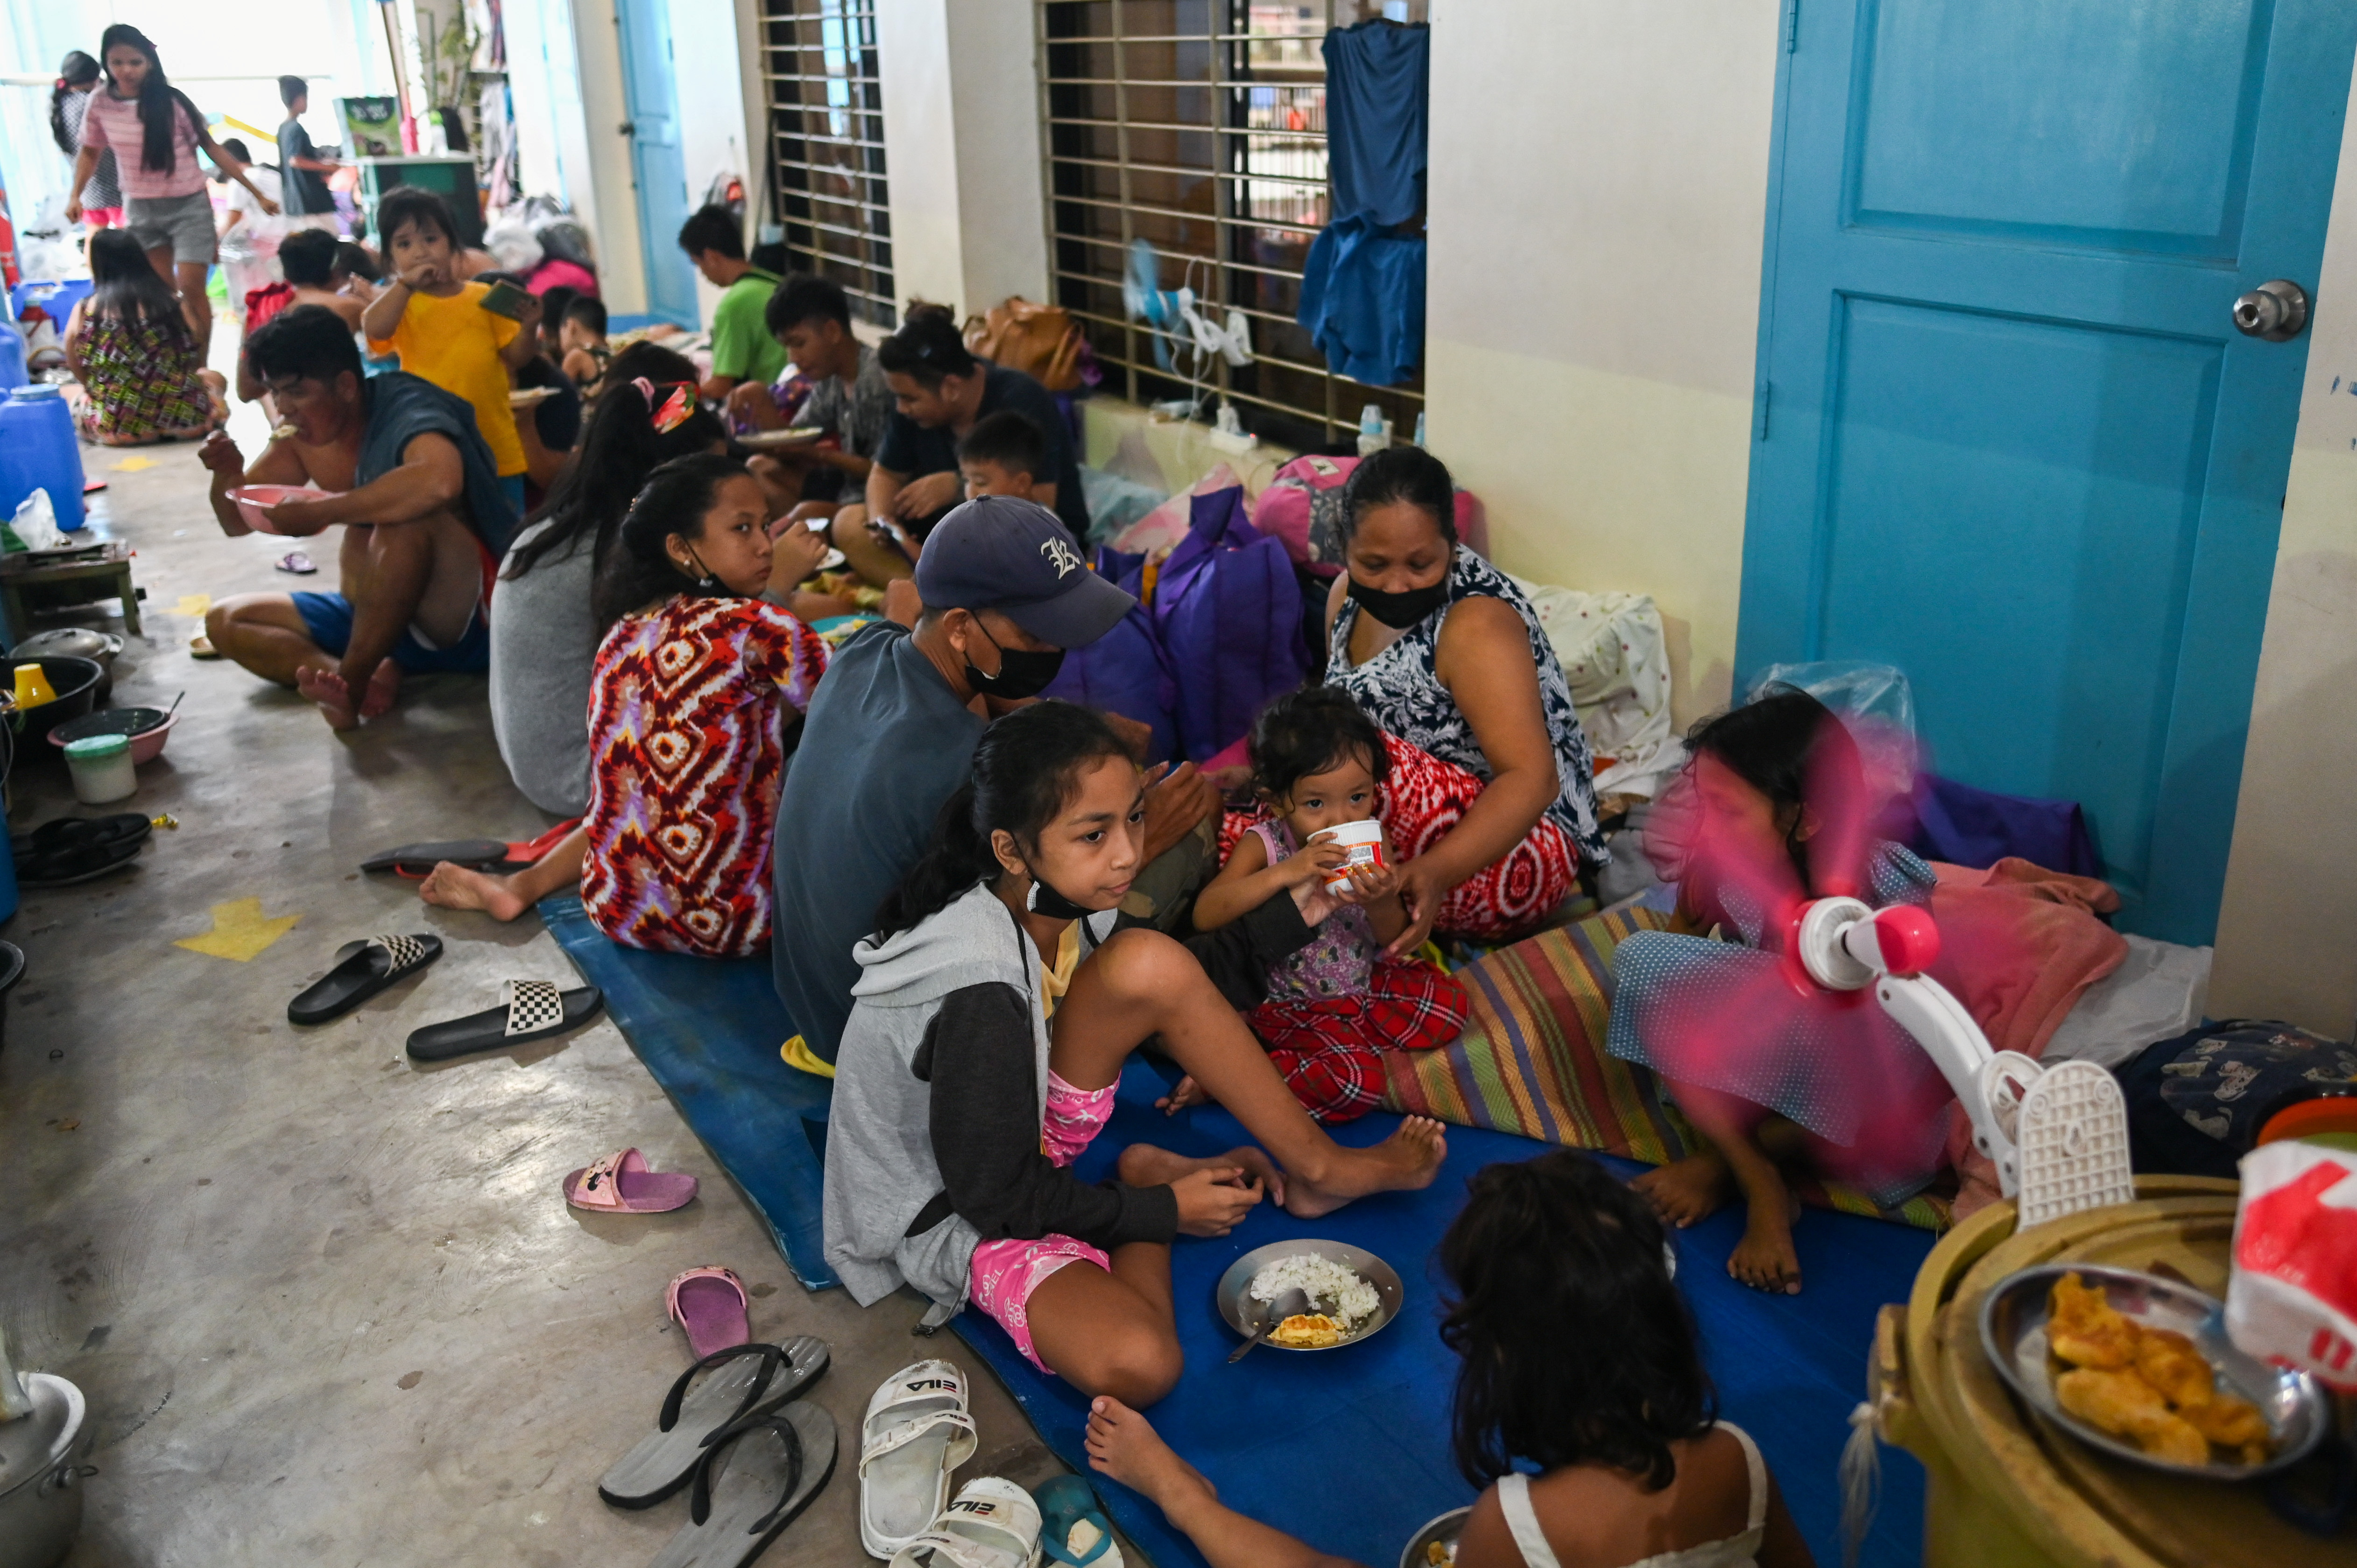 Residents have a meal after being evacuated at a school amid heavy rains that caused flooding in some areas in Marikina city, Metro Manila, Philippines, July 24, 2021. REUTERS/Lisa Marie David